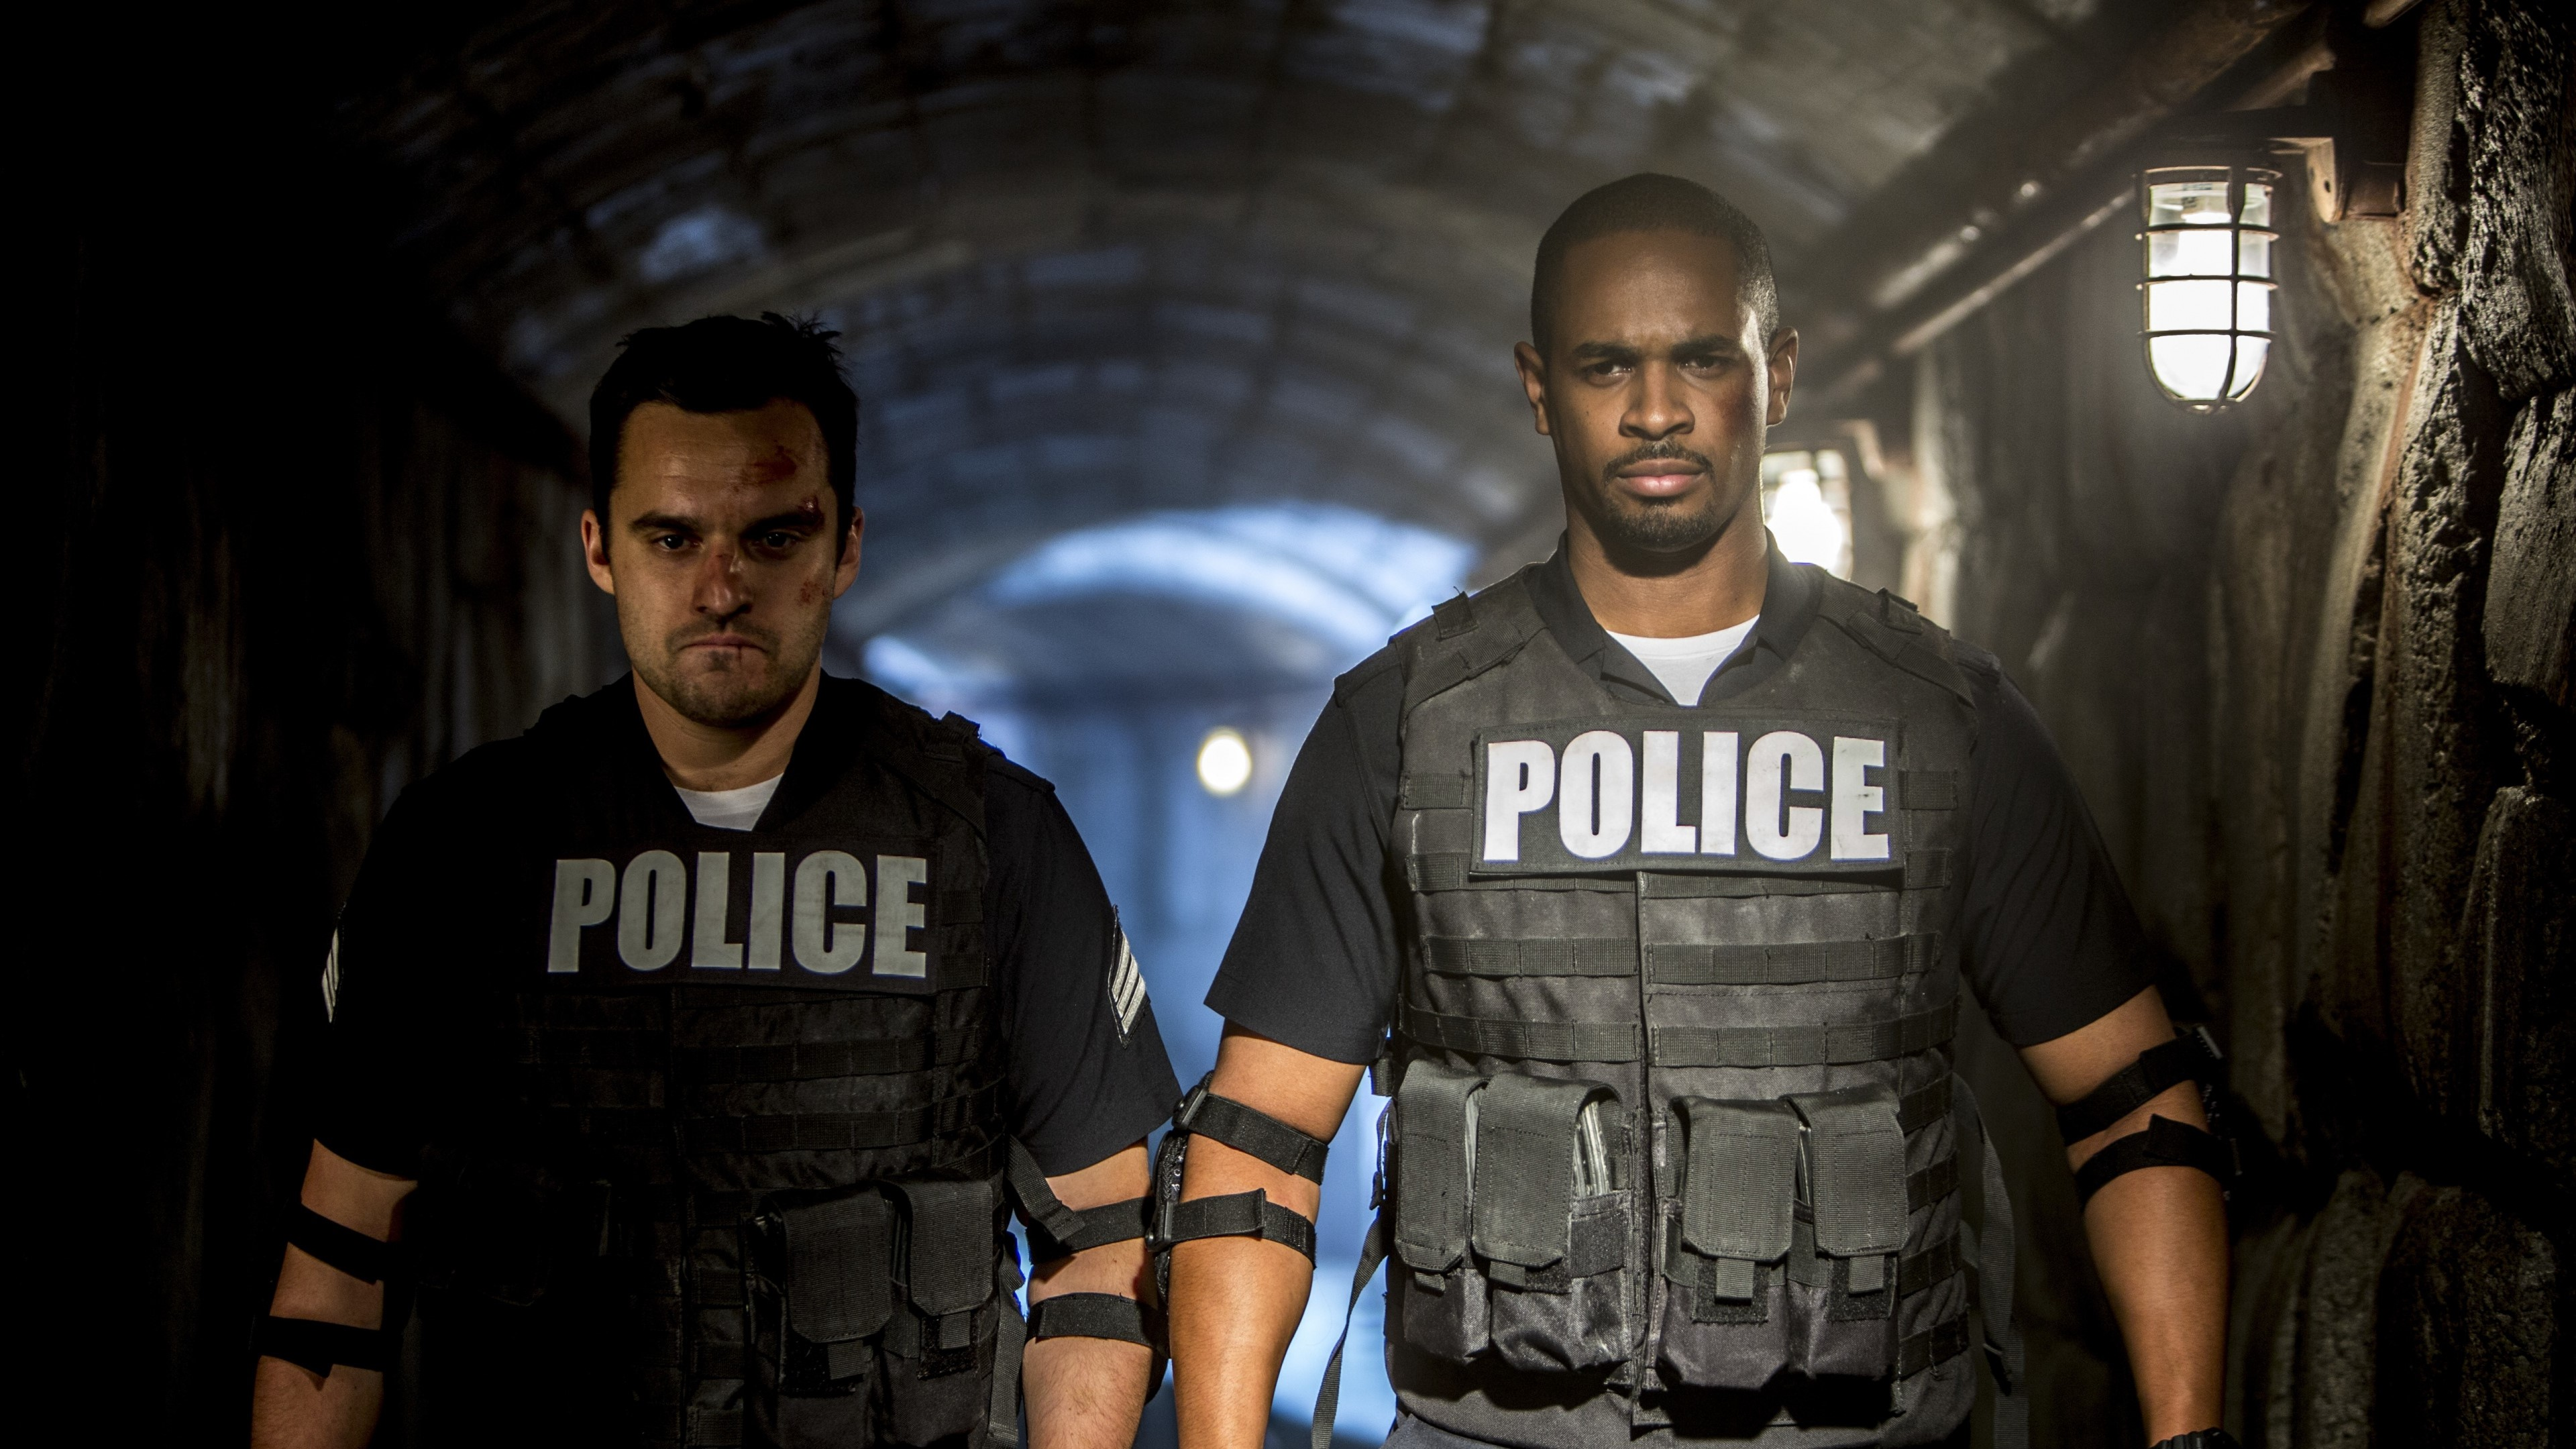 Wallpaper Damon Wayans Jr y Jake Johnson en Vamos de Polis Images